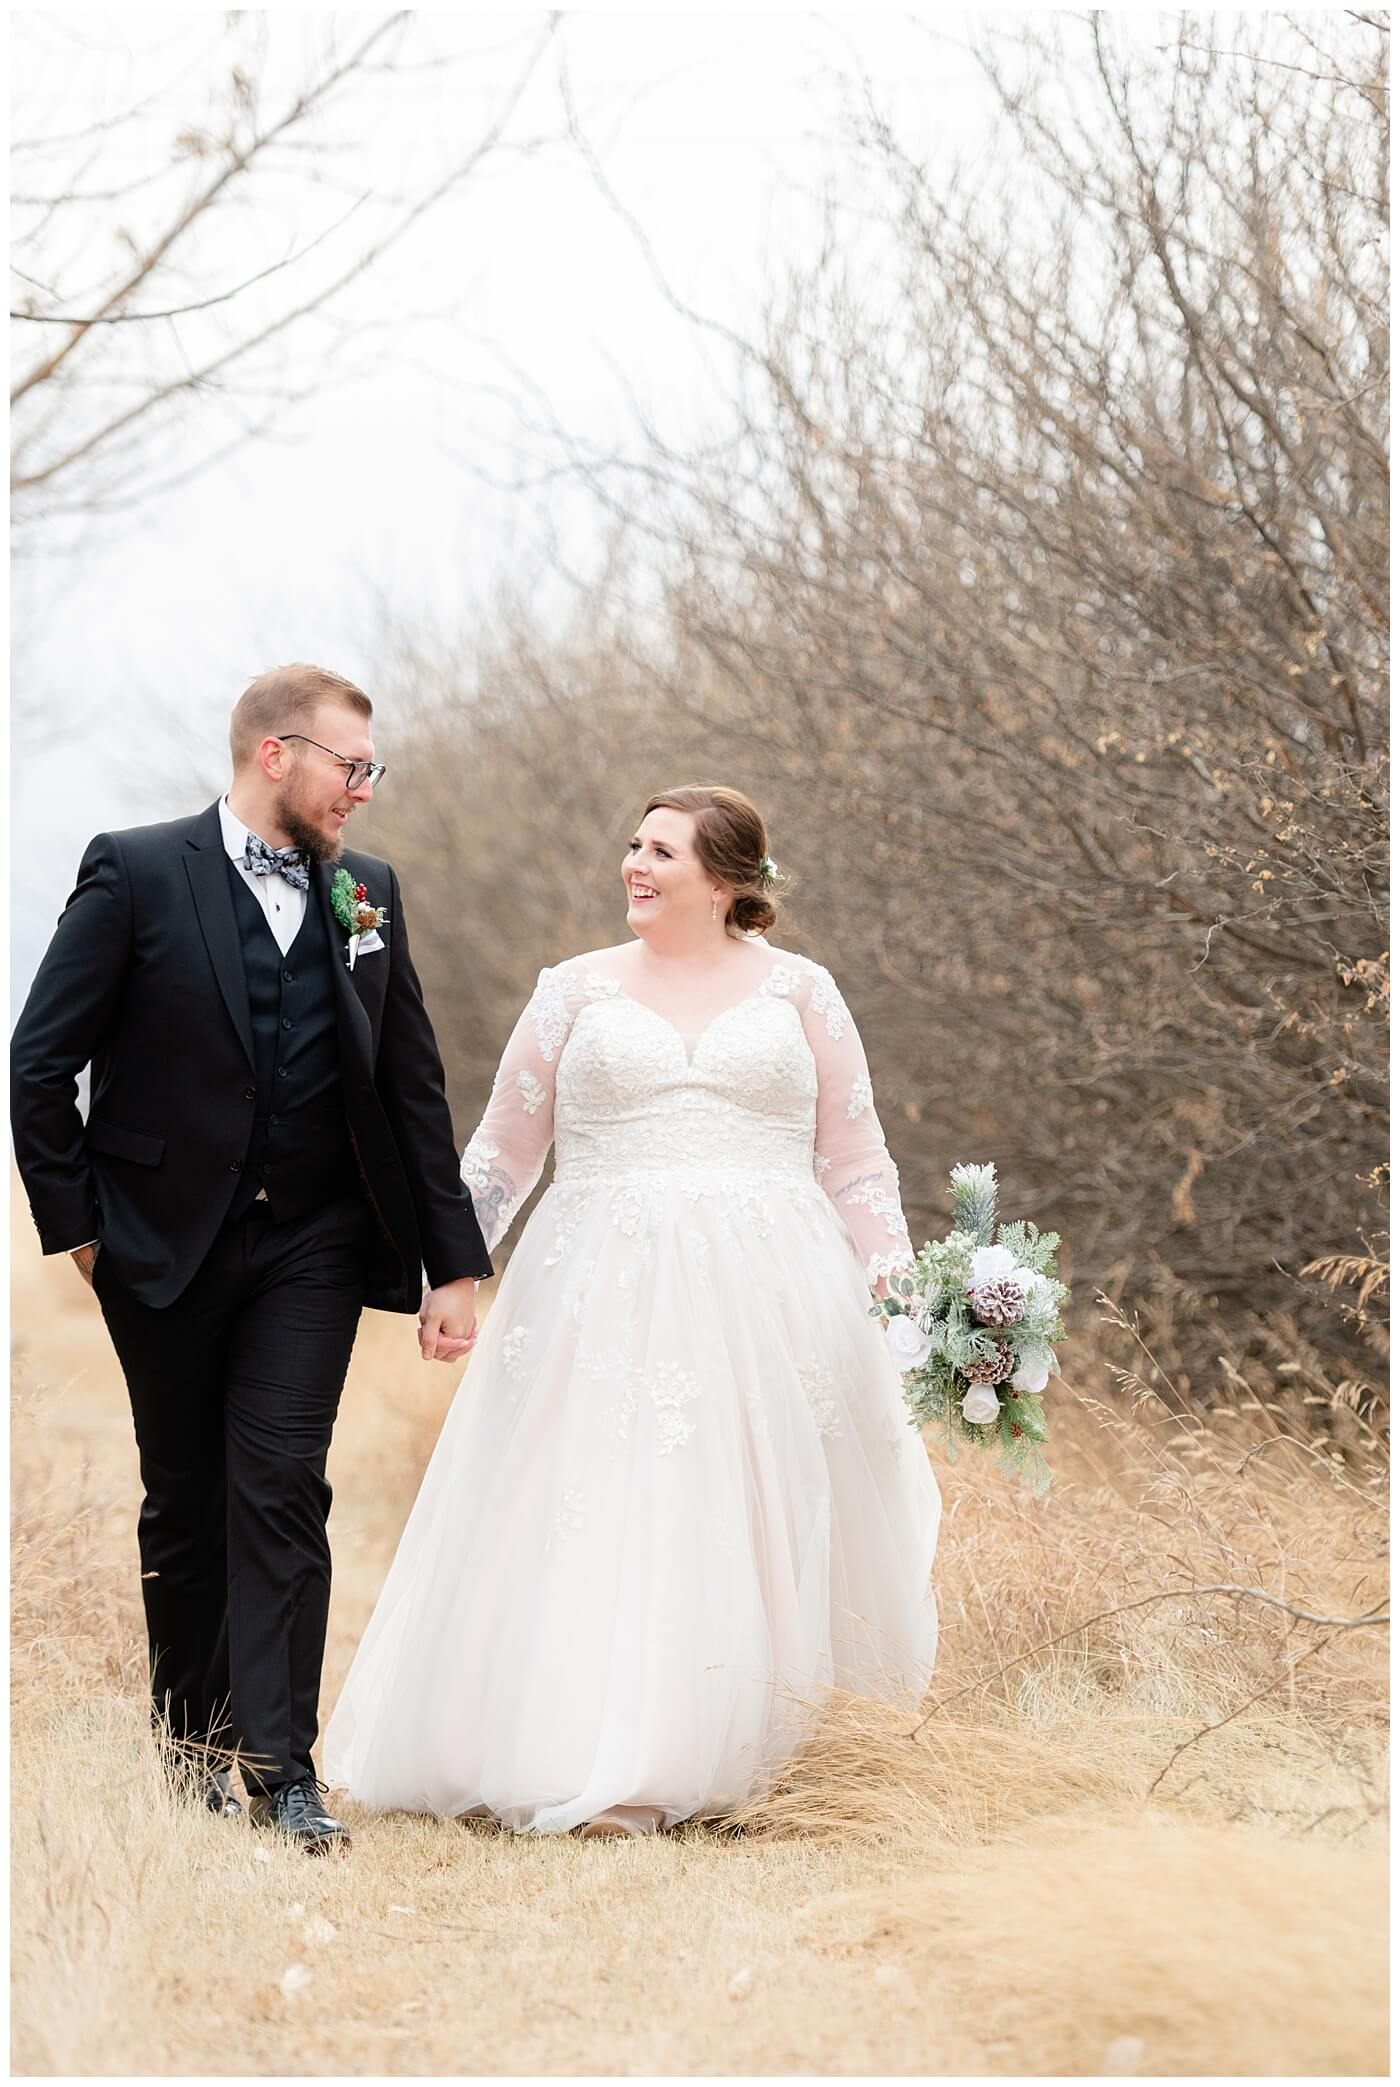 Regina Wedding Photographer - Kolton - Maxine - Bride & Groom walk through tall grass